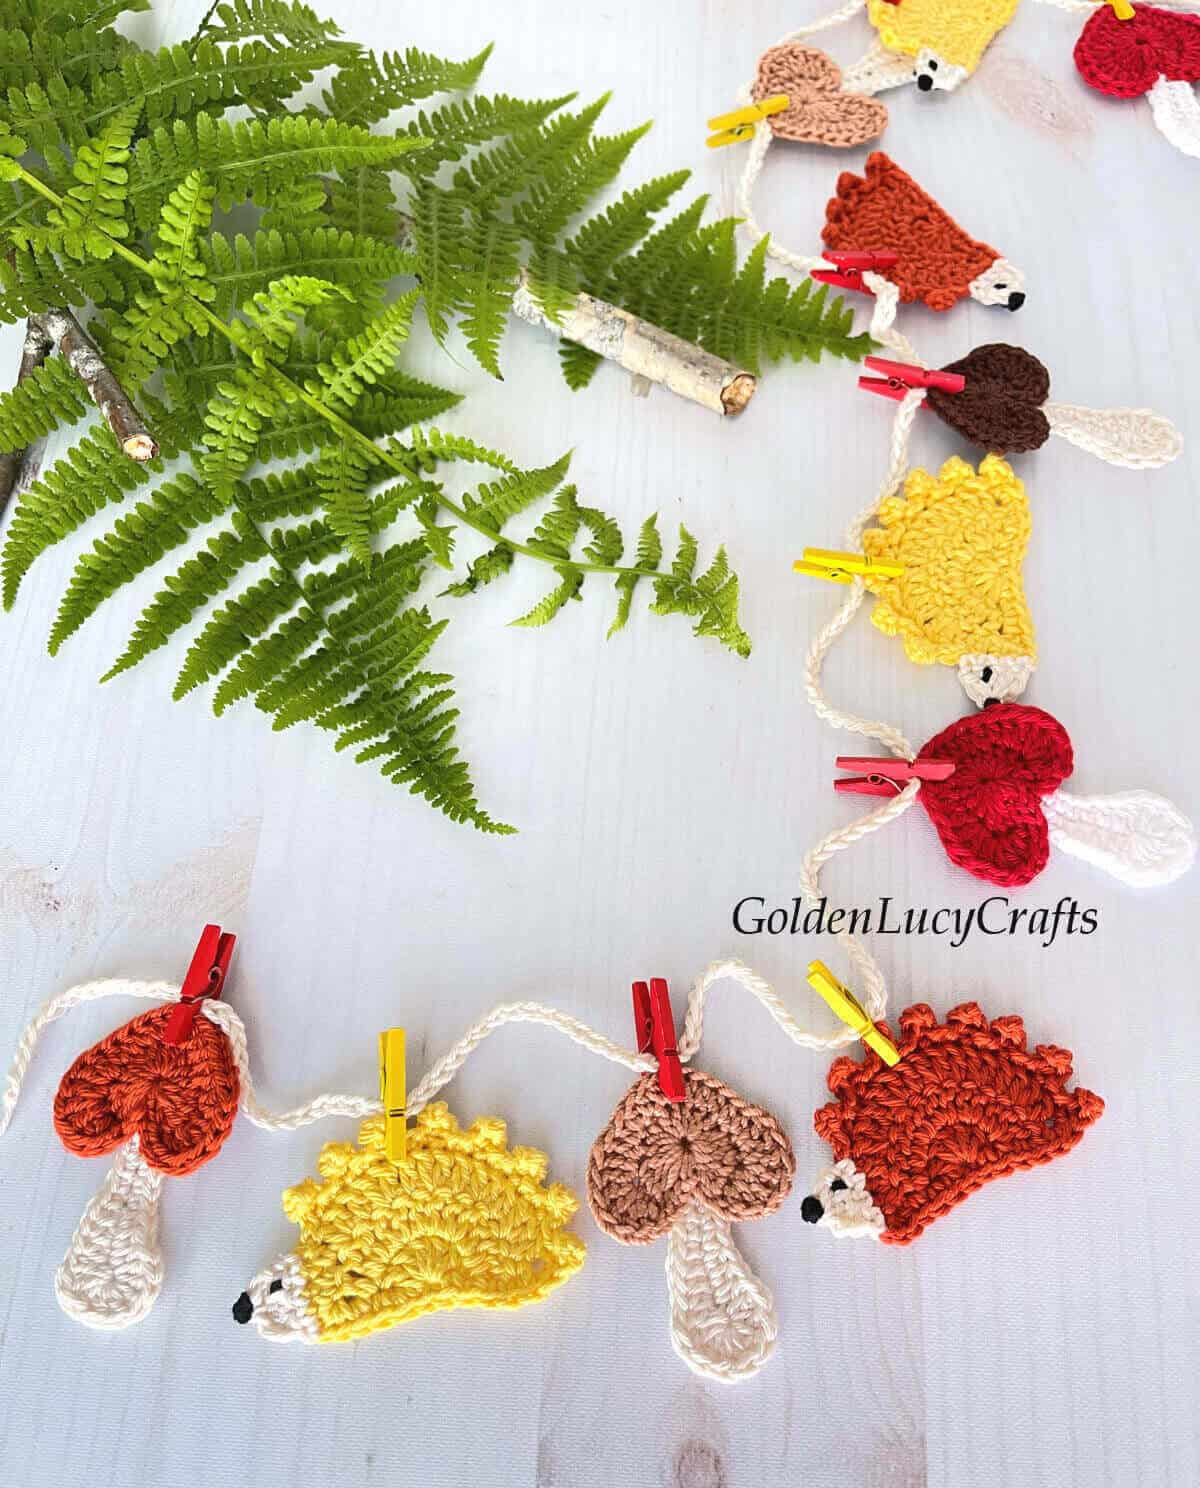 Crocheted mushrooms and hedgehogs attached with clothespins to the string.